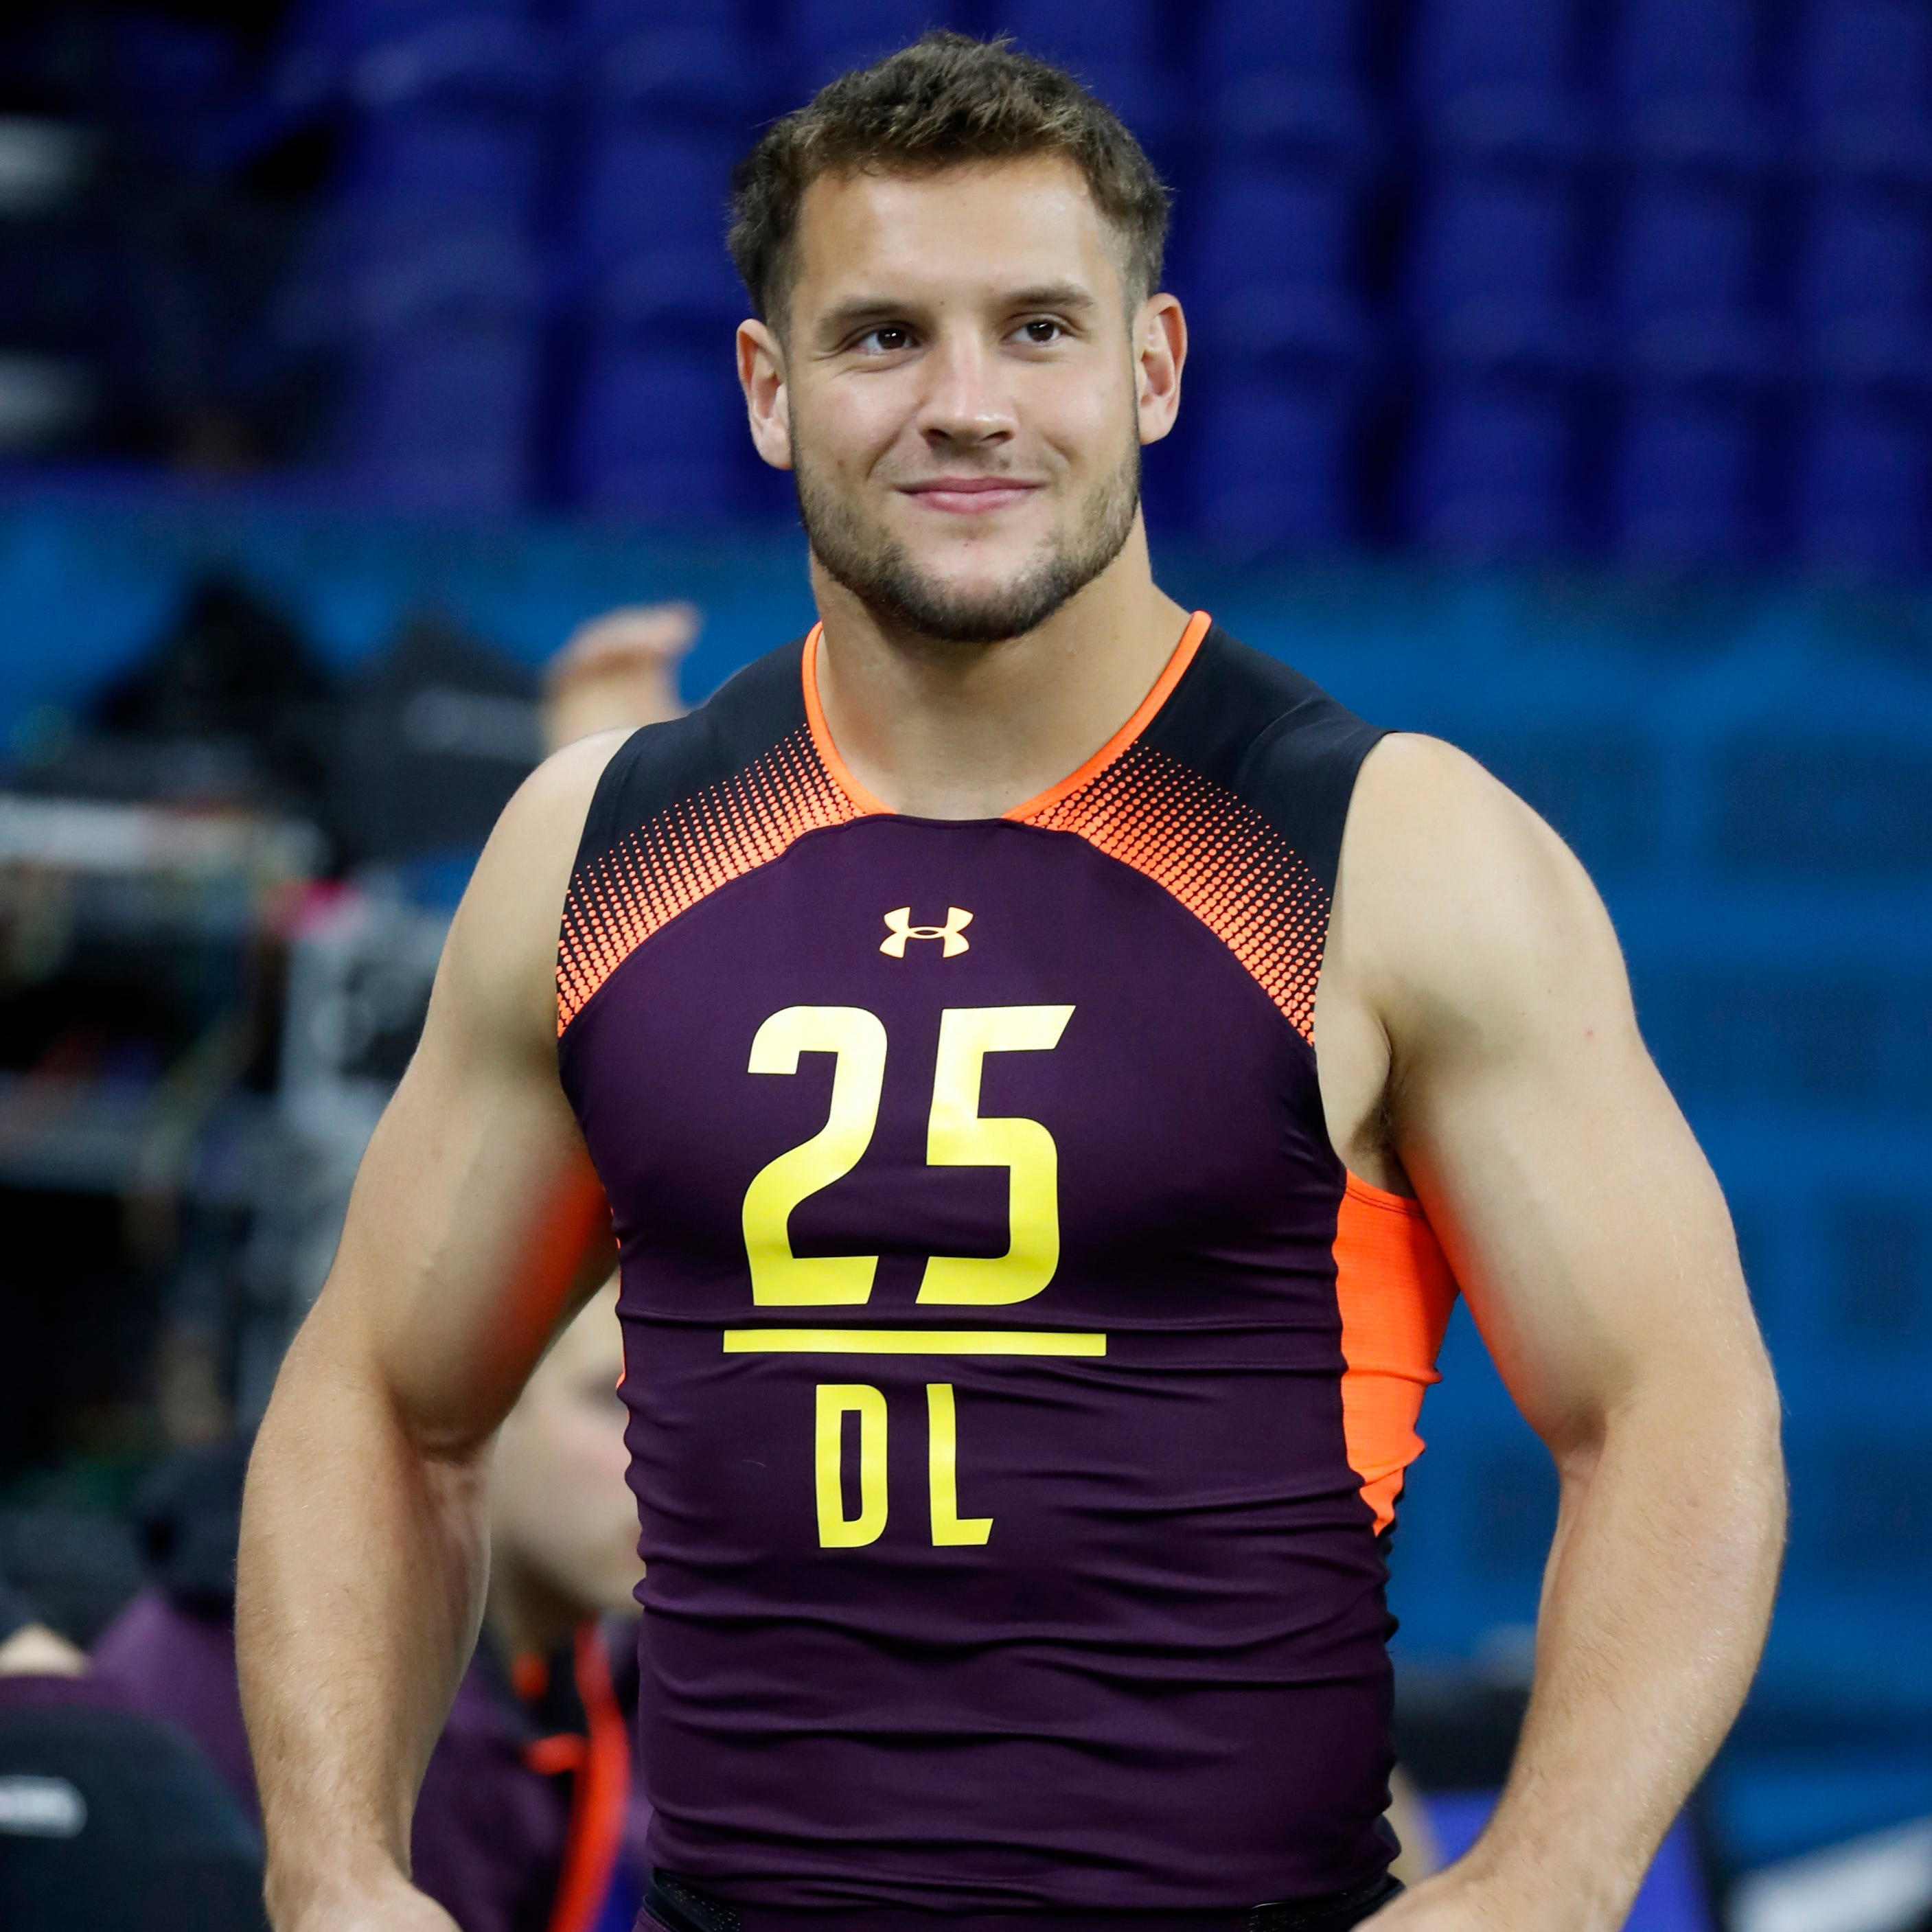 Ohio State's Nick Bosa figures to be among the...